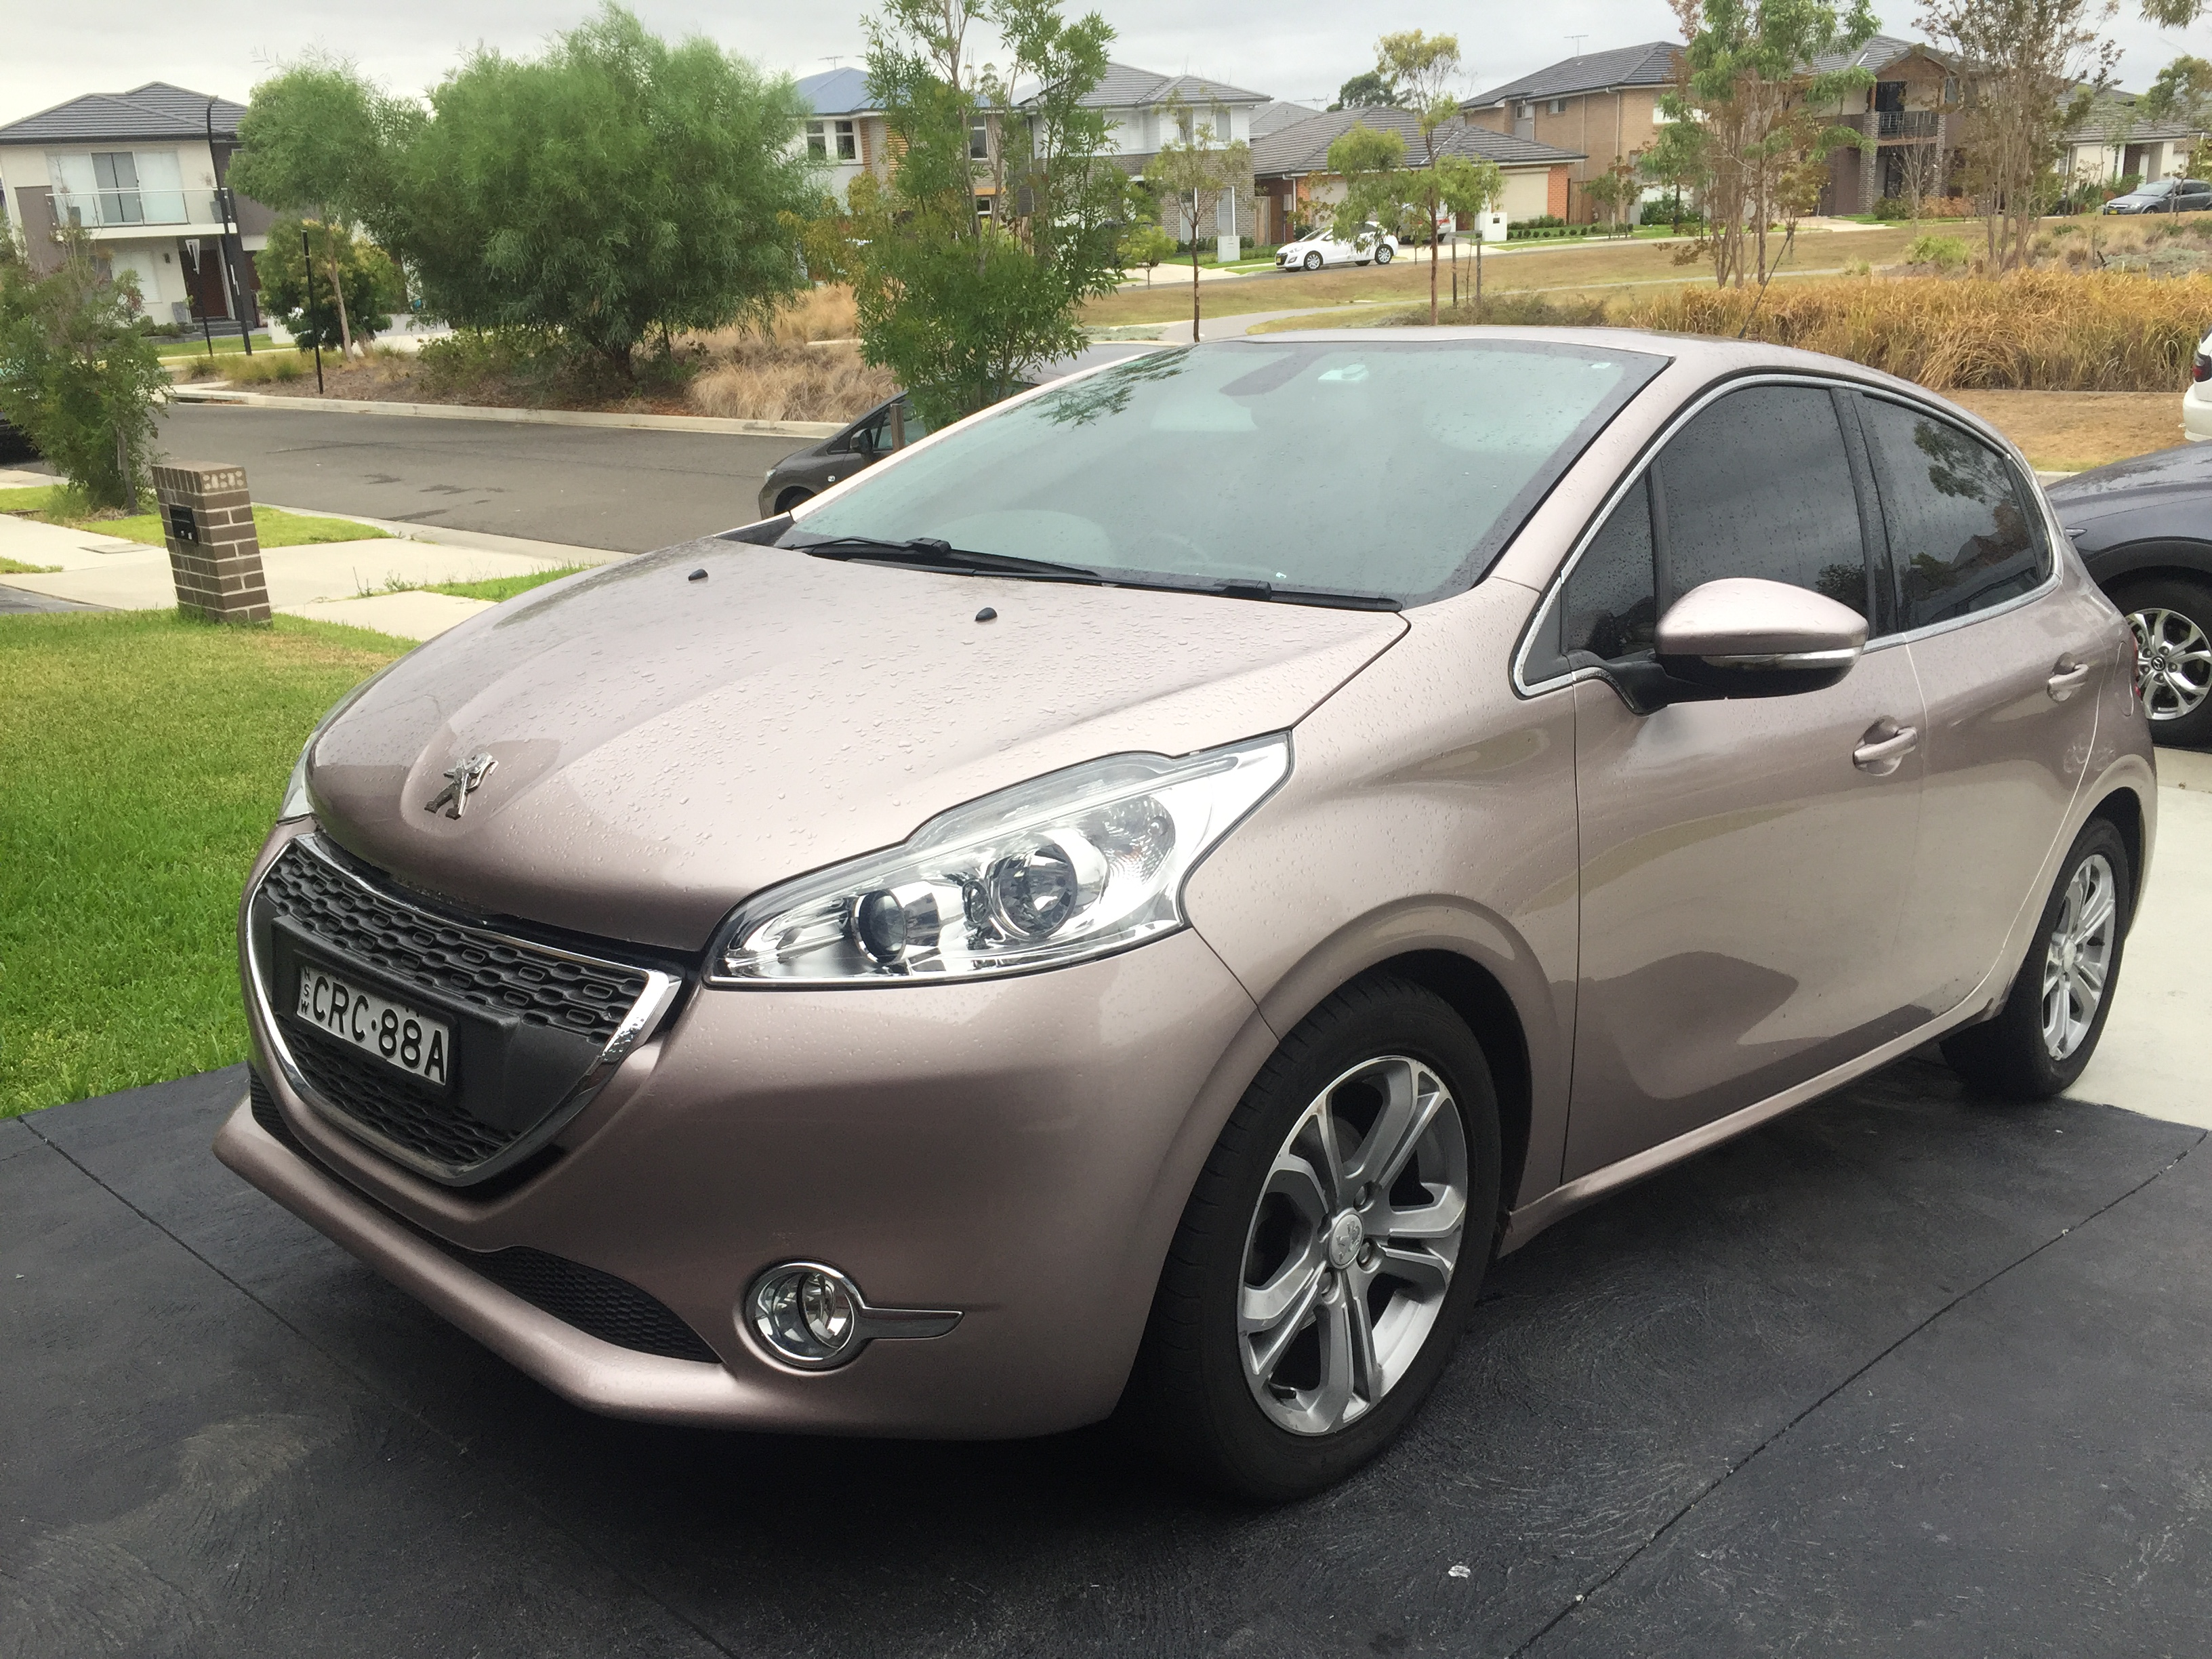 Picture of Krichelle's 2013 Peugeot 208